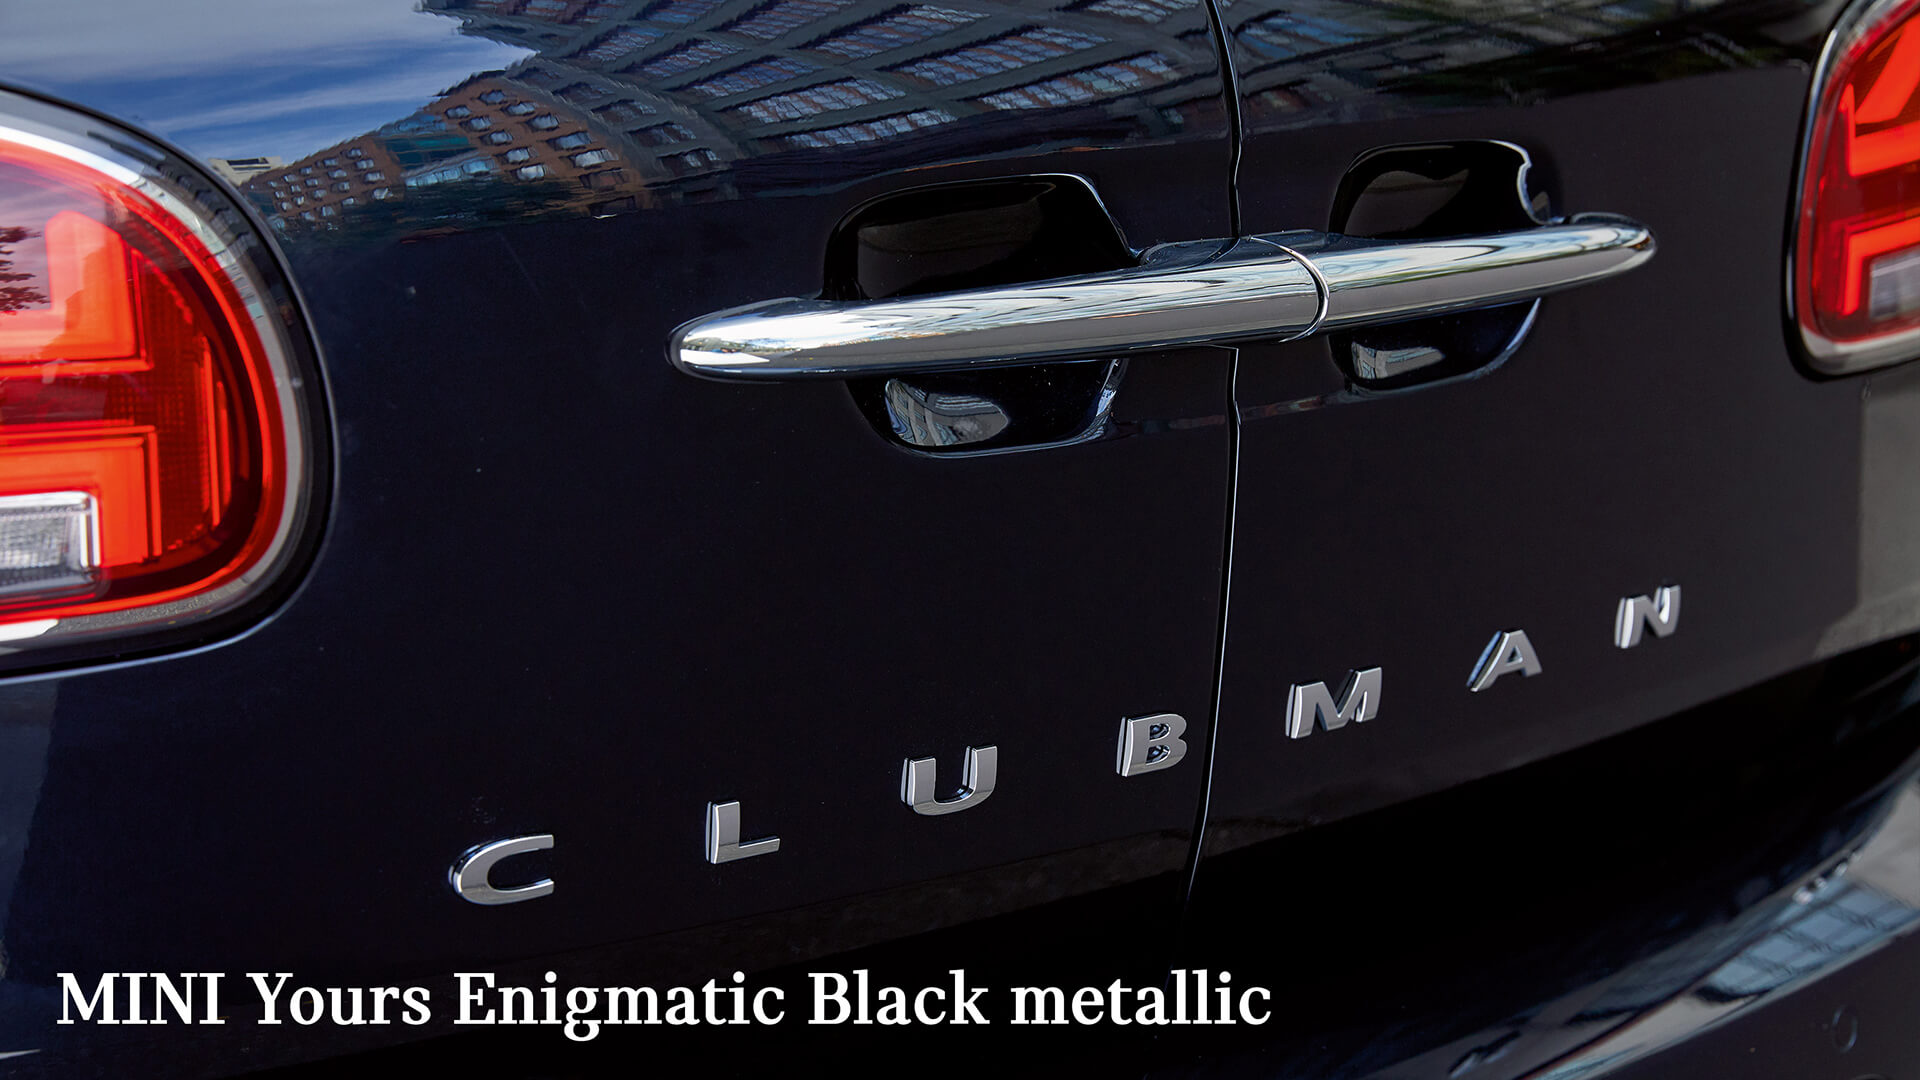 Enigmatic Black